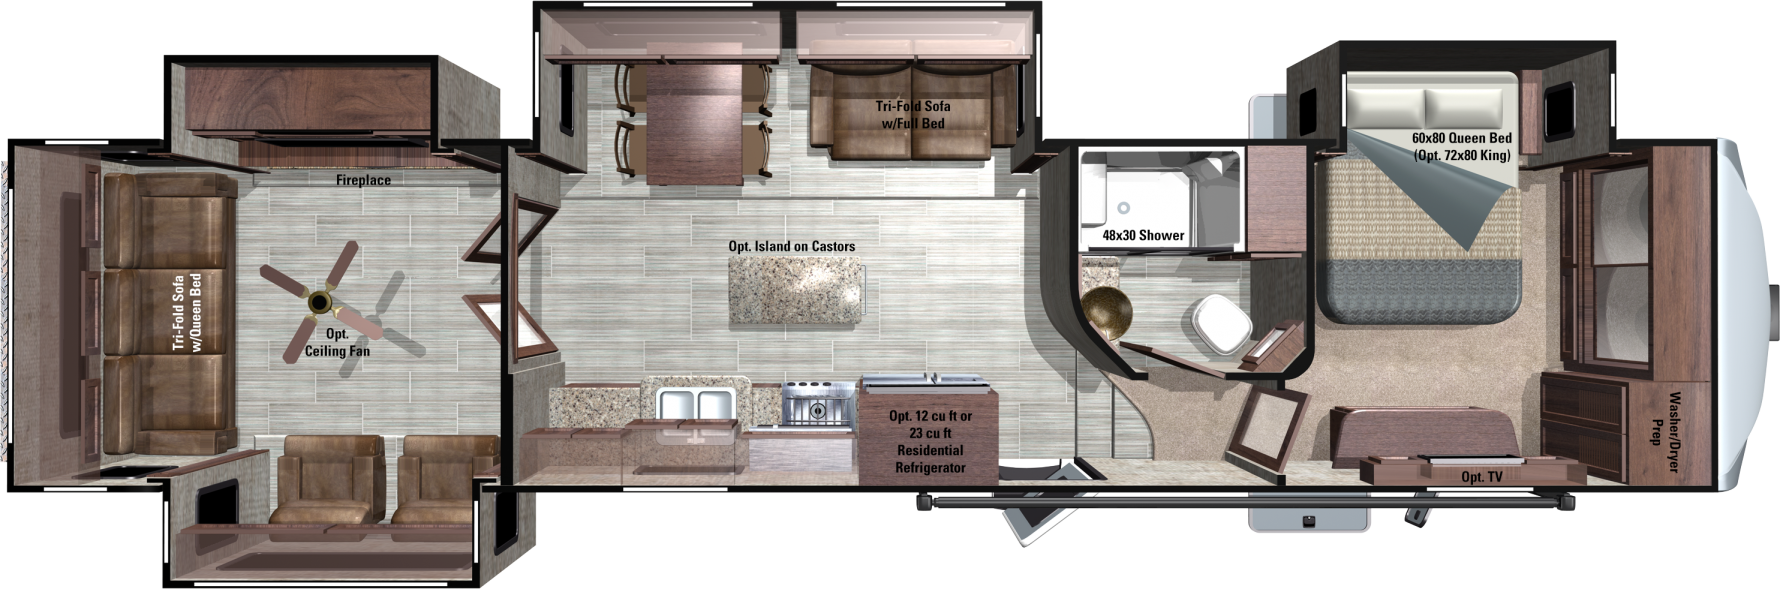 MF430RLS Floorplan